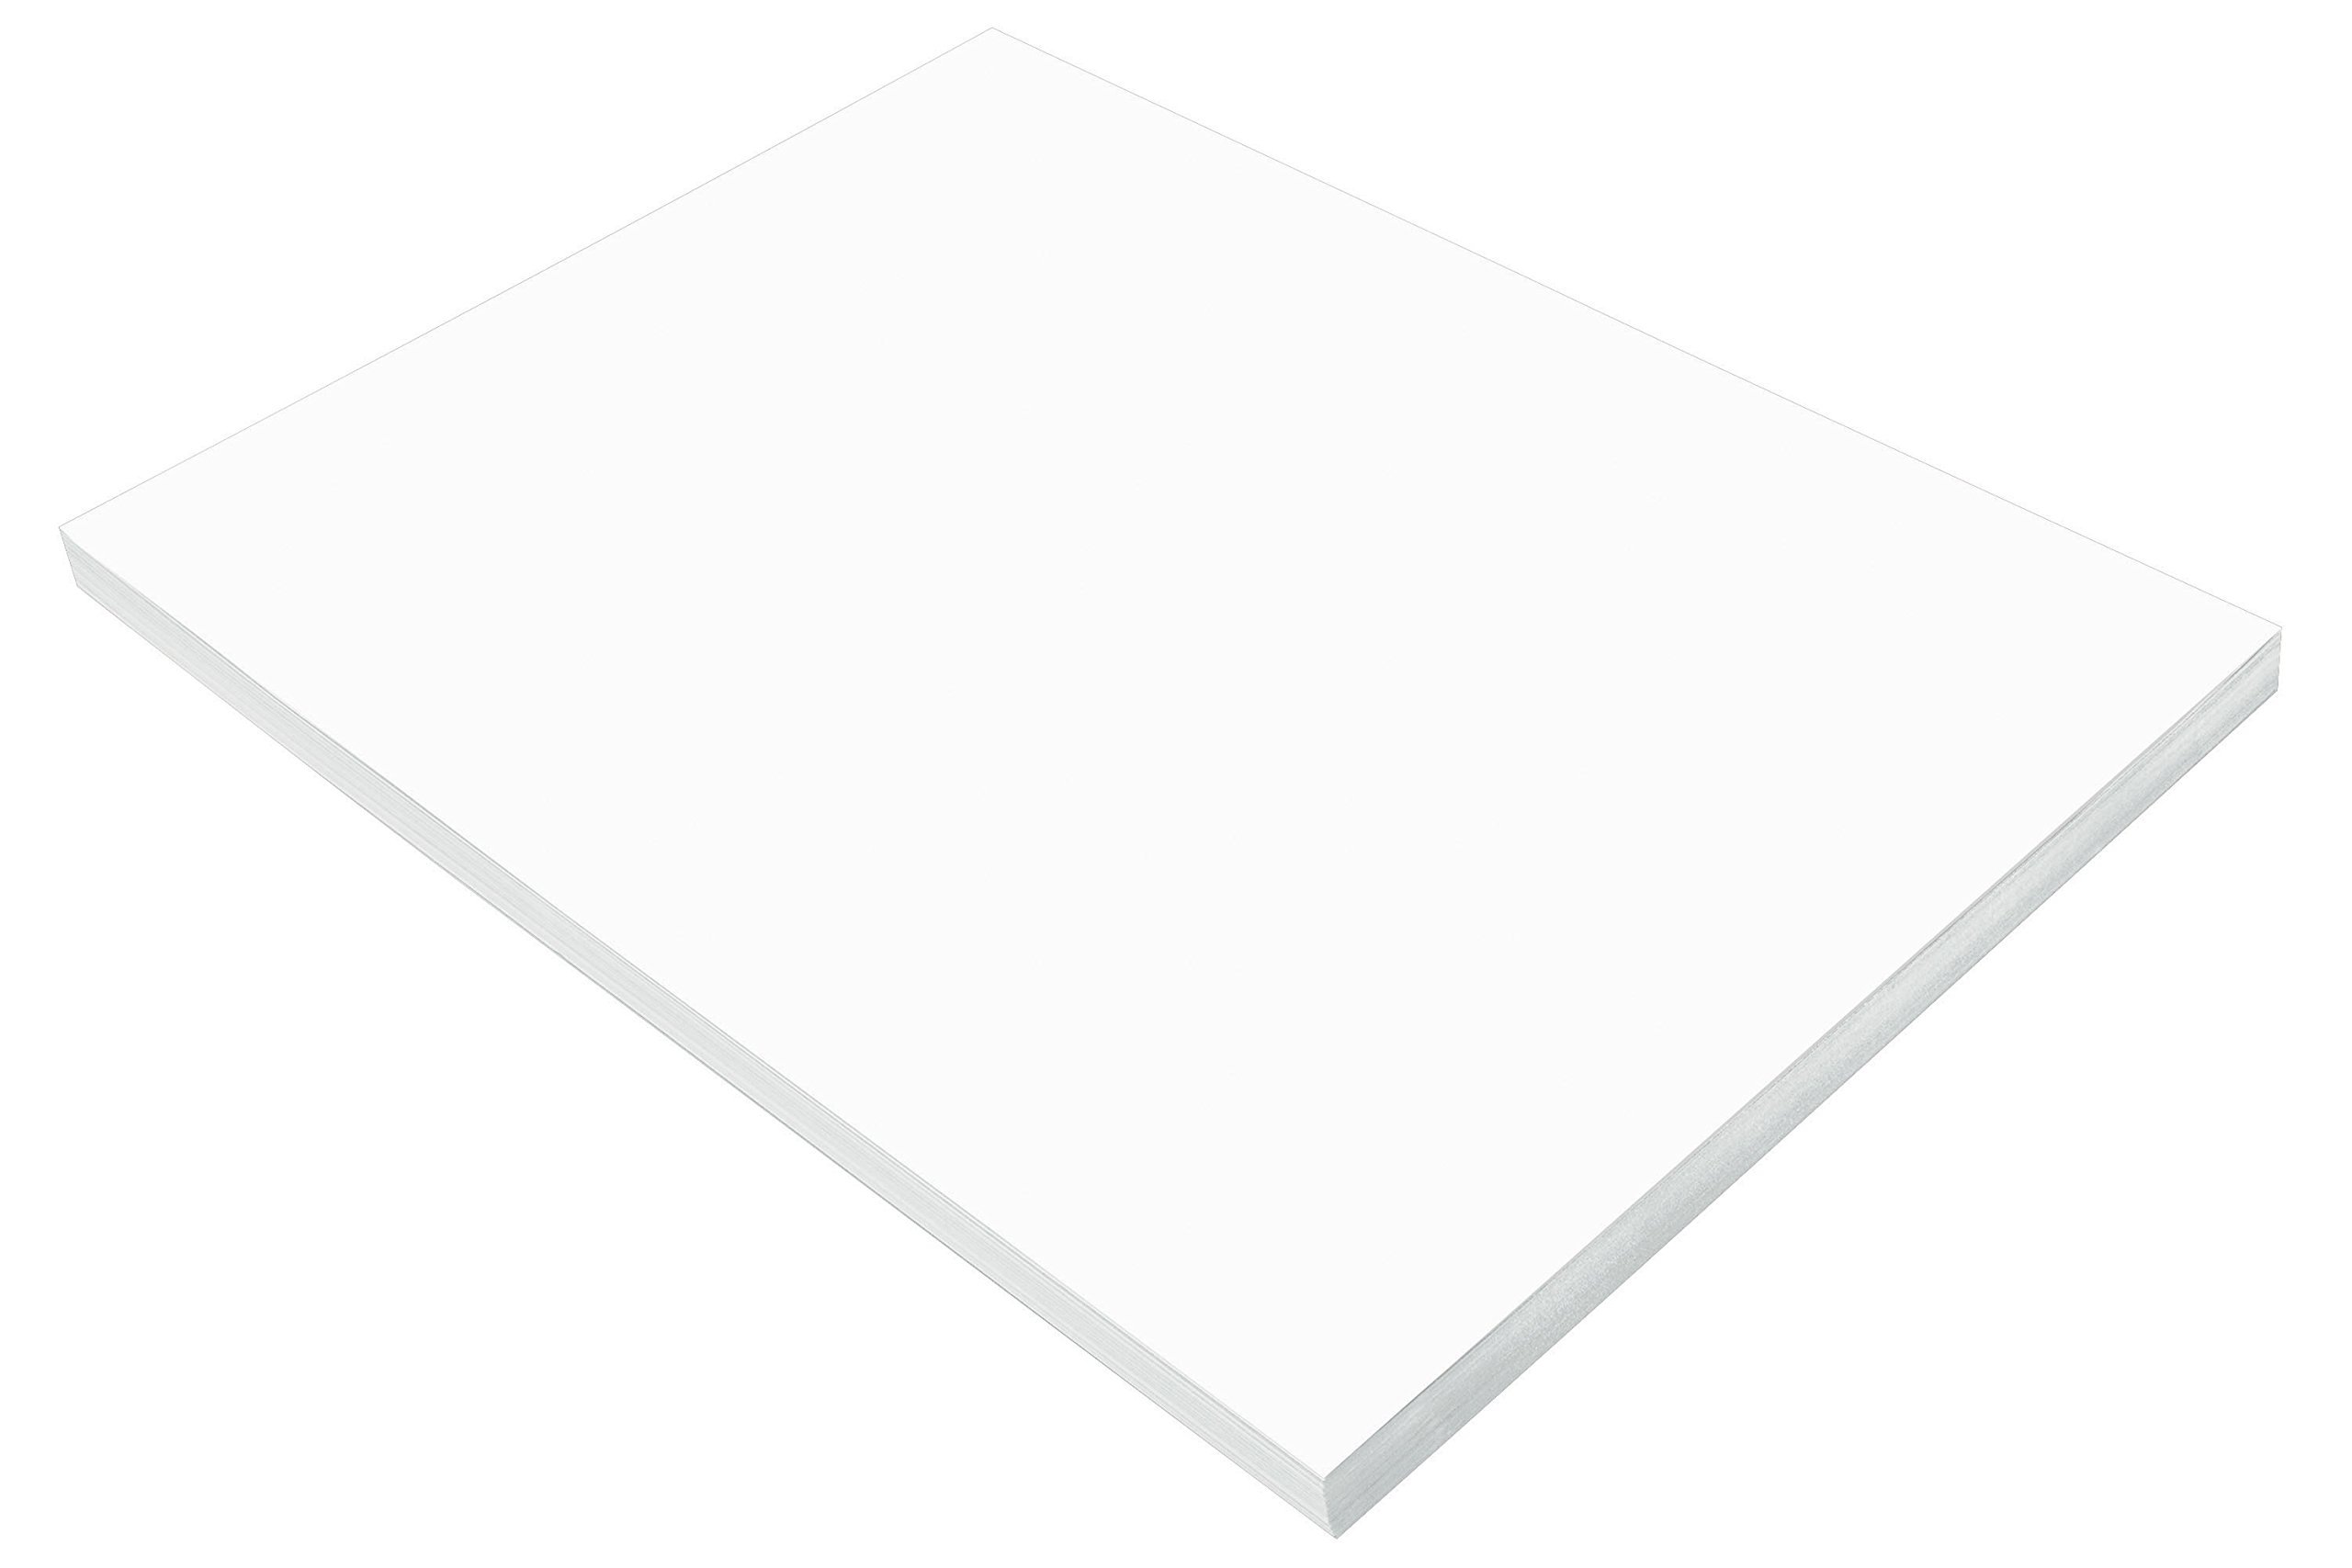 Pacon SunWorks Construction Paper 8718 Bright White 18 x 24 100-Count